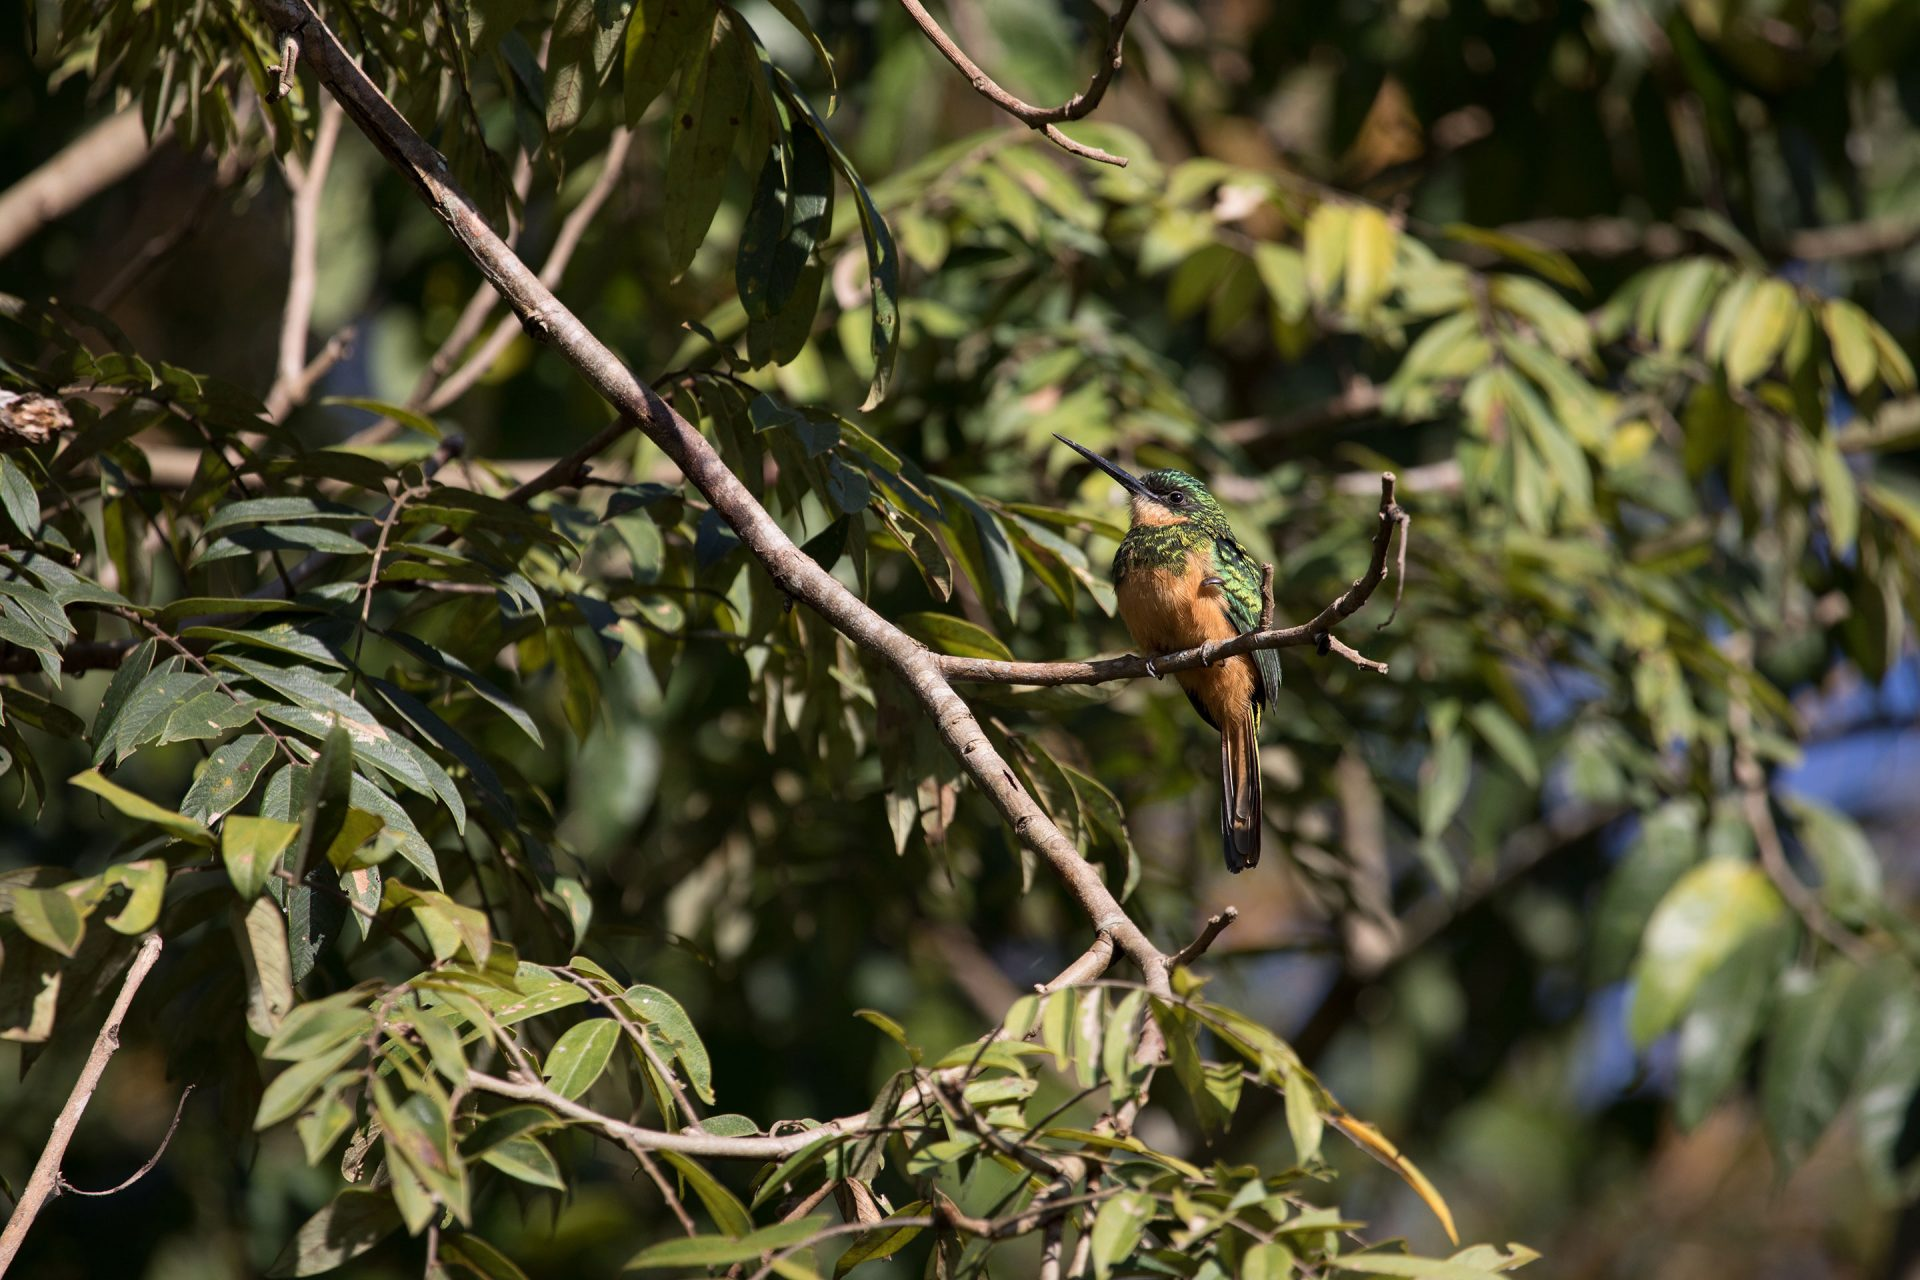 Rufous-Tailed Jacamar was also common at our Pousada.